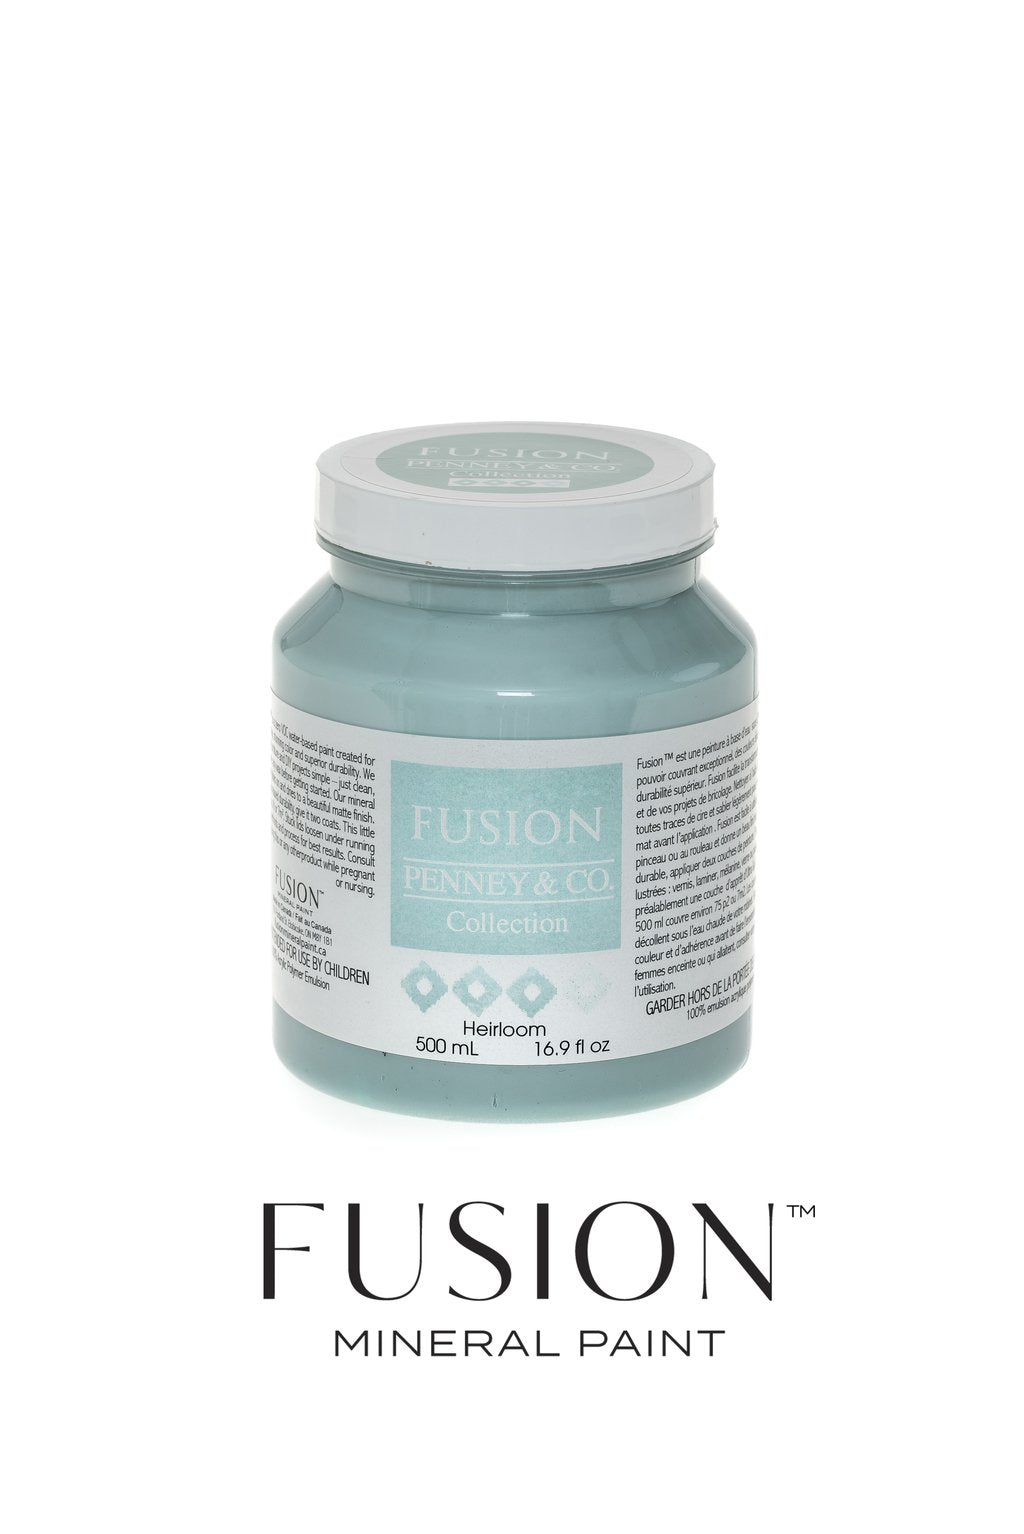 Heirloom Fusion Mineral Paint